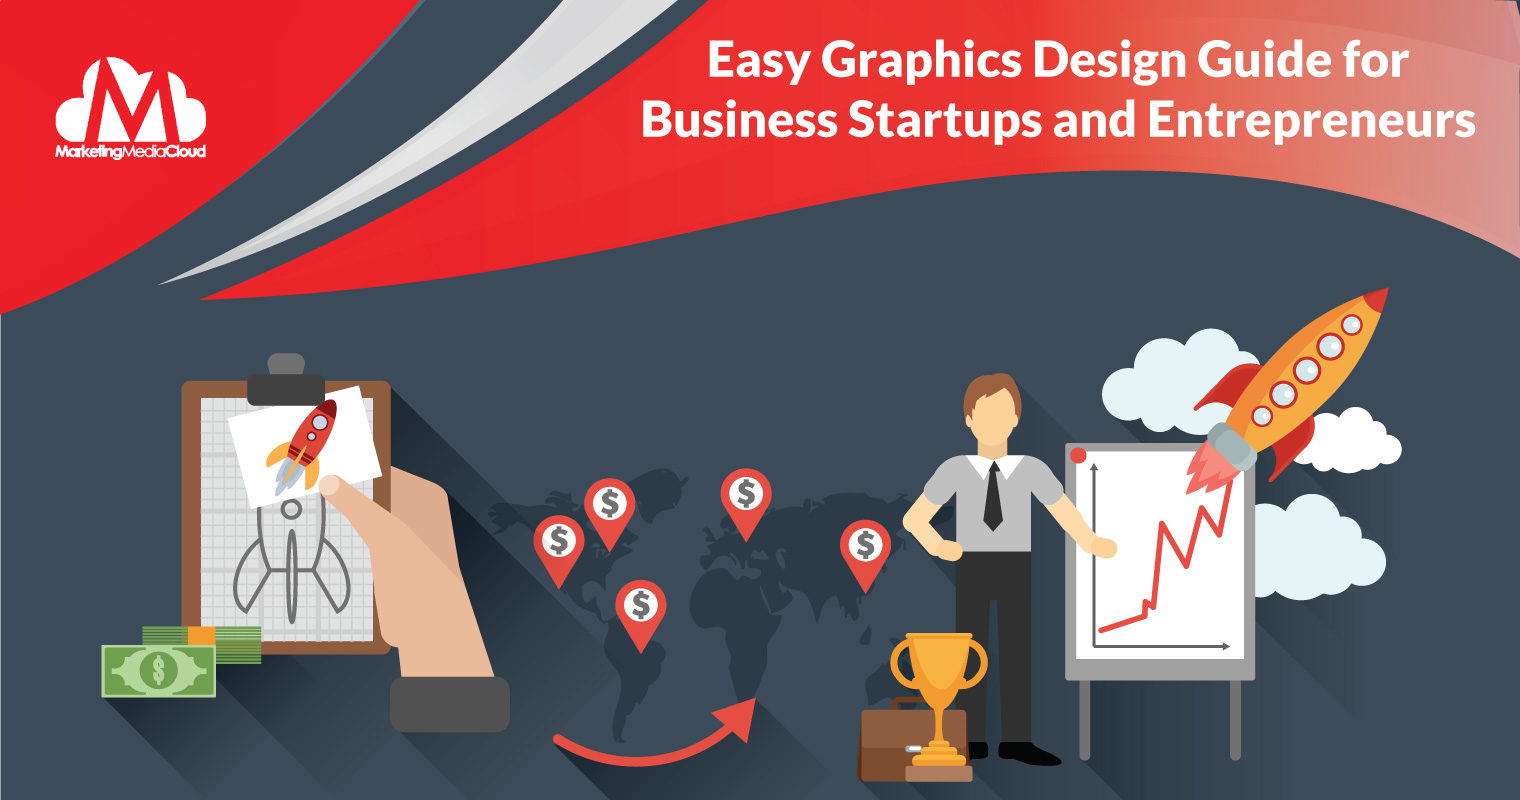 Easy Graphics Design Guide for Business Startups and Entrepreneurs